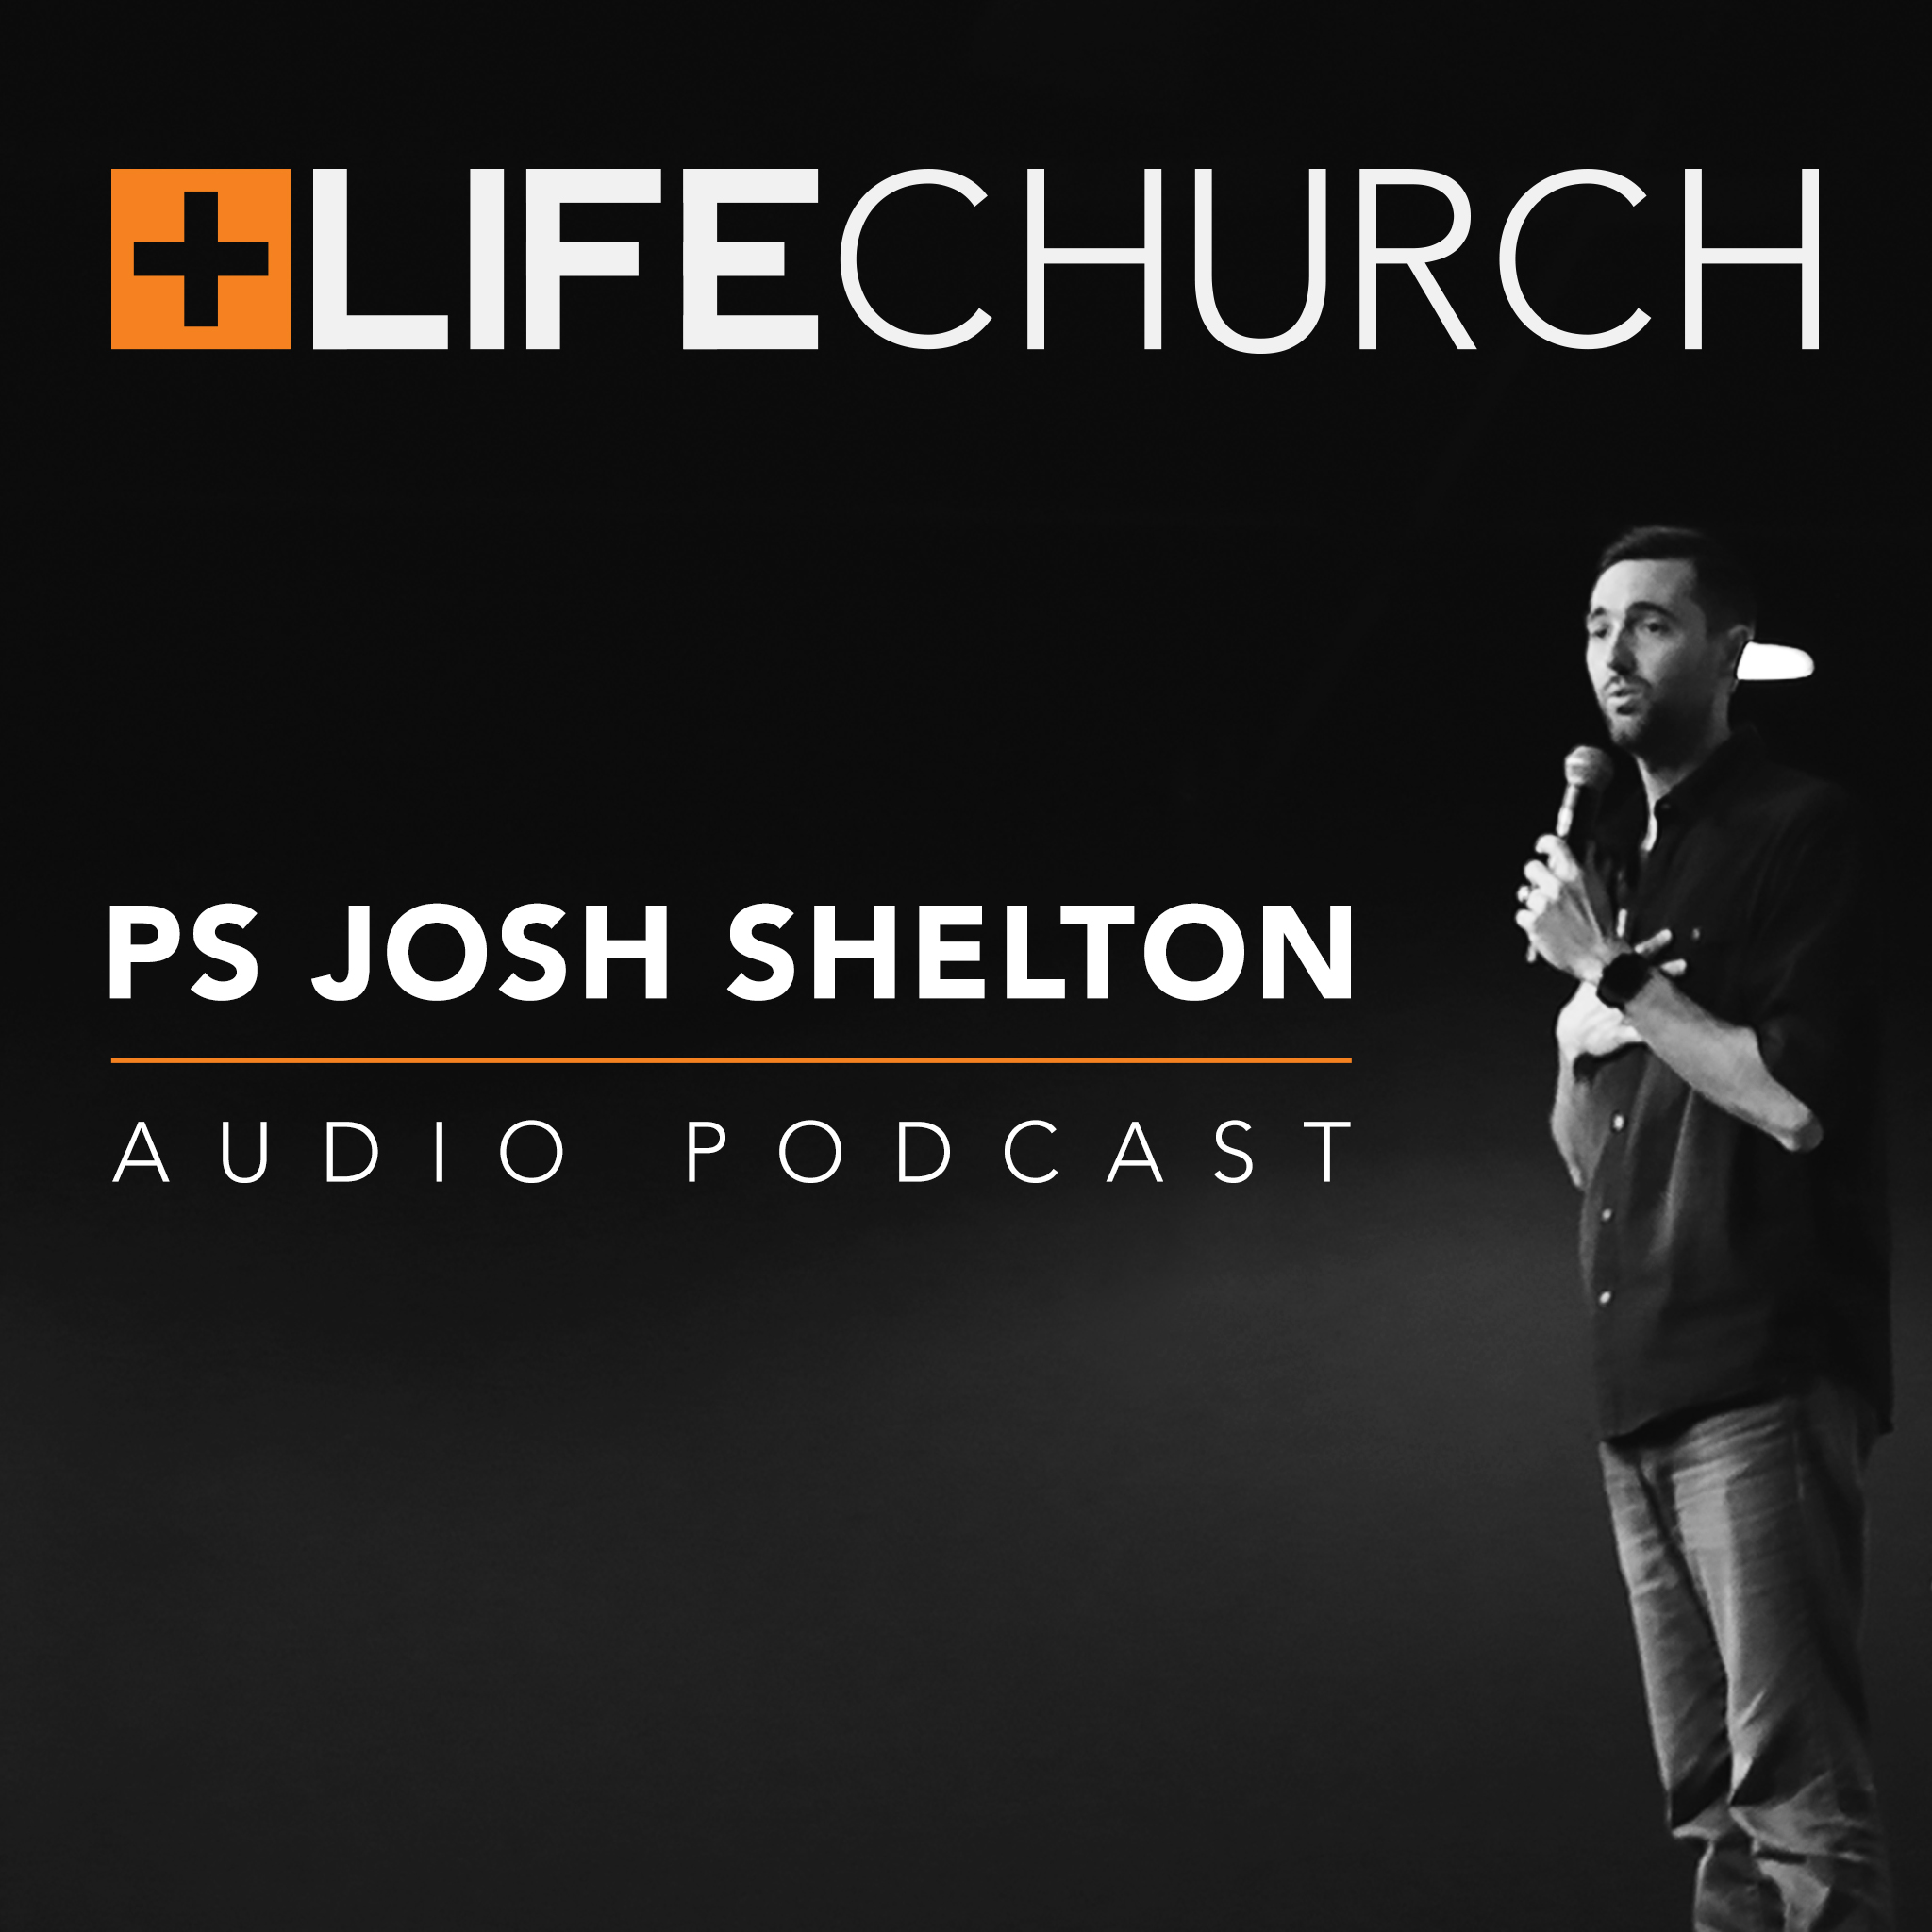 LIFECHURCH STL Podcast